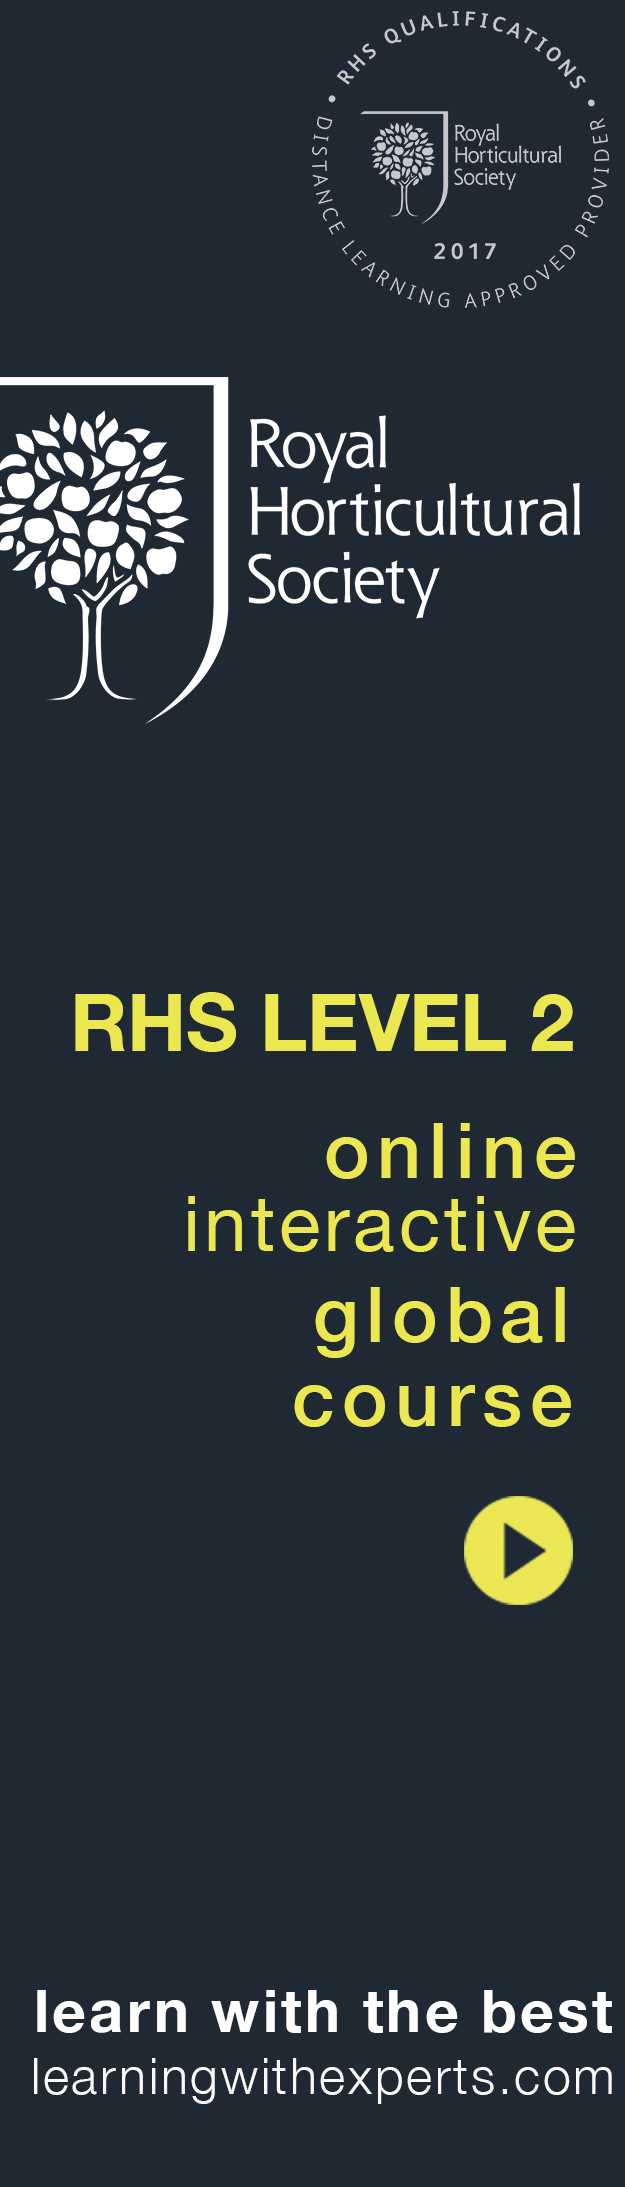 Online Courses Taught By Experts at learningwithexperts.com